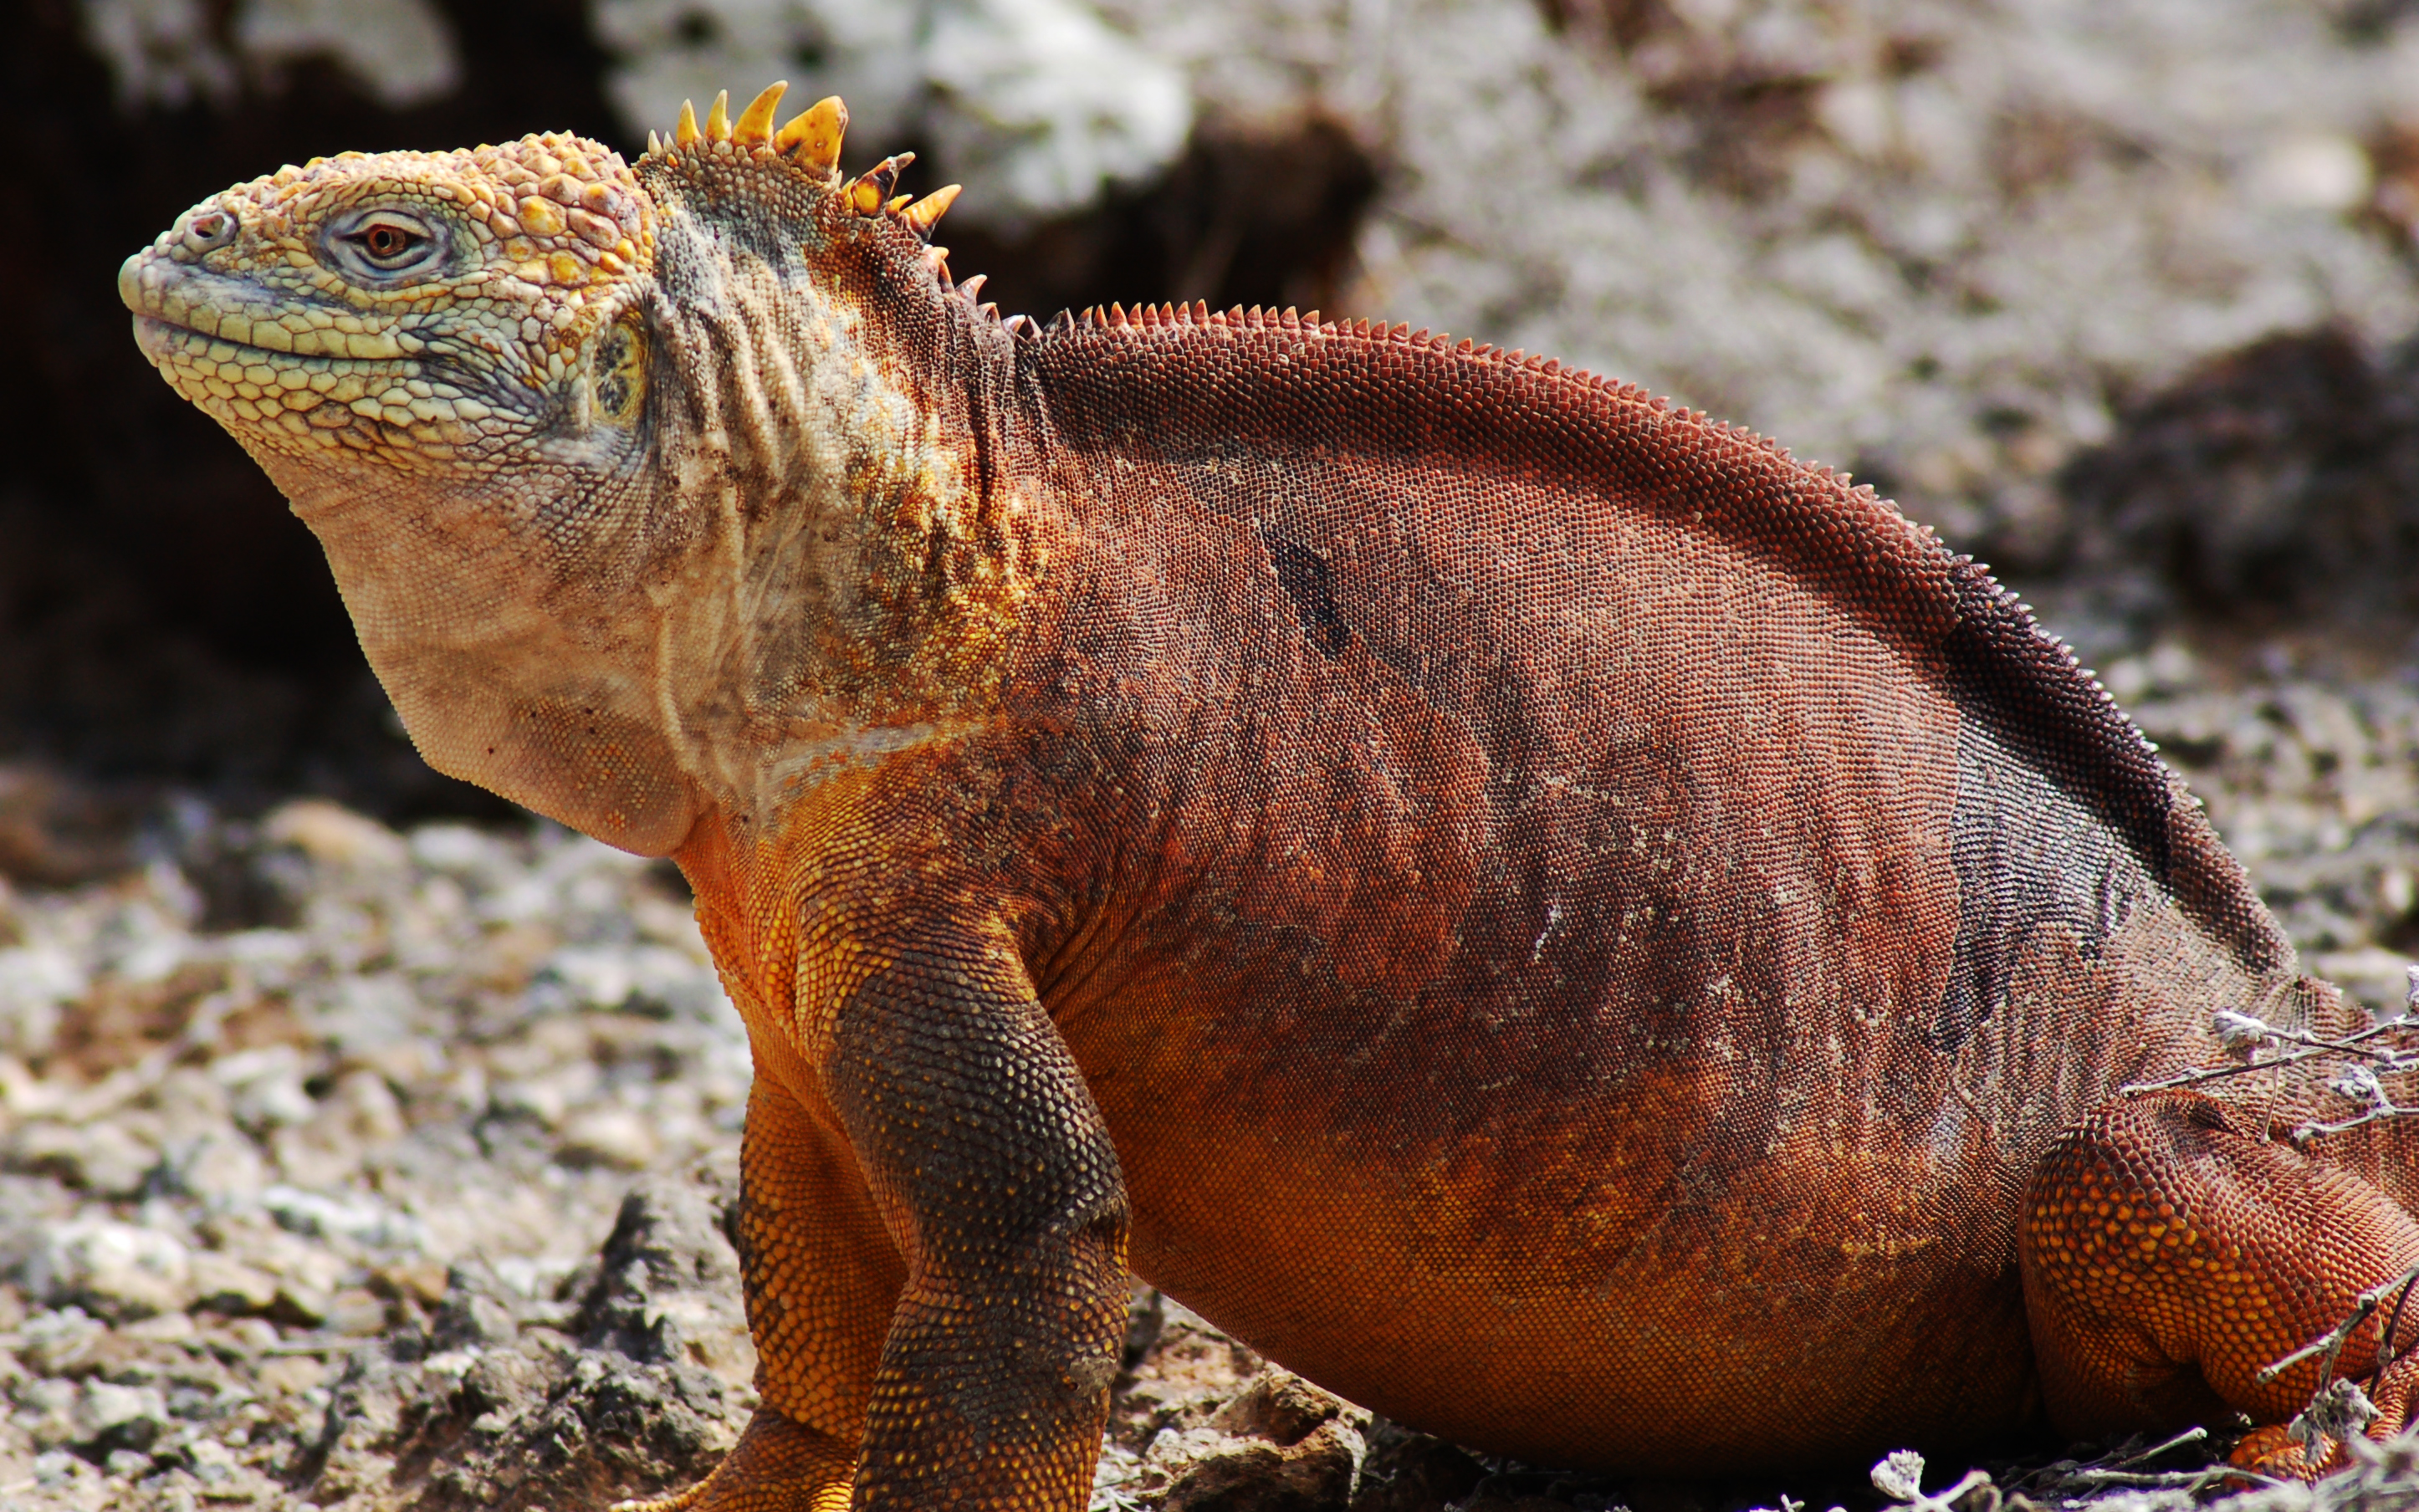 Galapagos Land Iguana Backgrounds on Wallpapers Vista